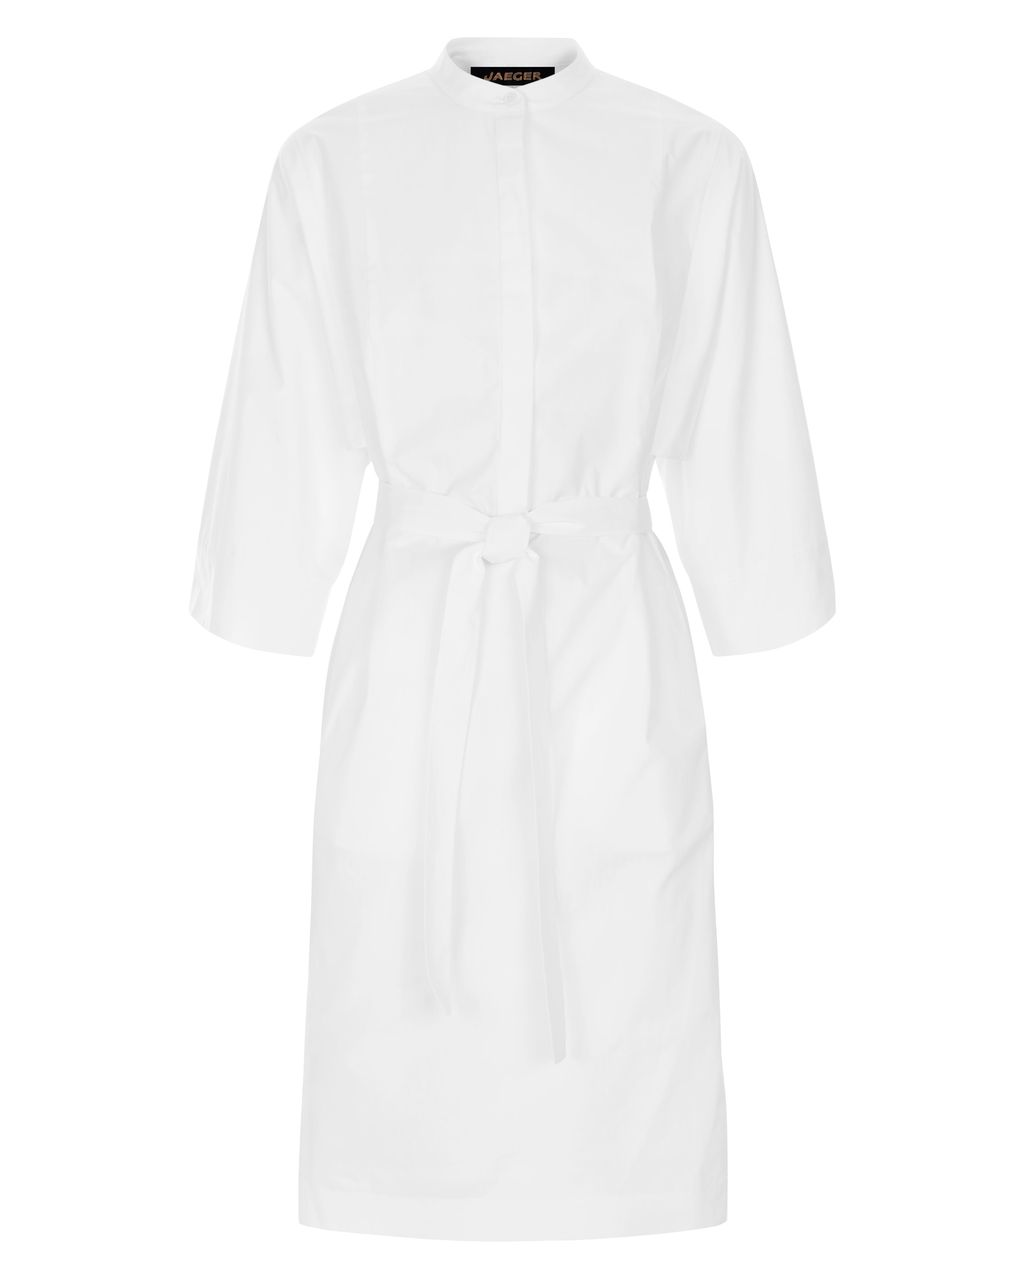 Draped Sleeve Shirt Dress, White - style: shirt; fit: tailored/fitted; pattern: plain; waist detail: belted waist/tie at waist/drawstring; predominant colour: white; occasions: casual, creative work; length: just above the knee; neckline: collarstand; fibres: cotton - 100%; sleeve length: 3/4 length; sleeve style: standard; texture group: cotton feel fabrics; pattern type: fabric; season: s/s 2016; wardrobe: basic